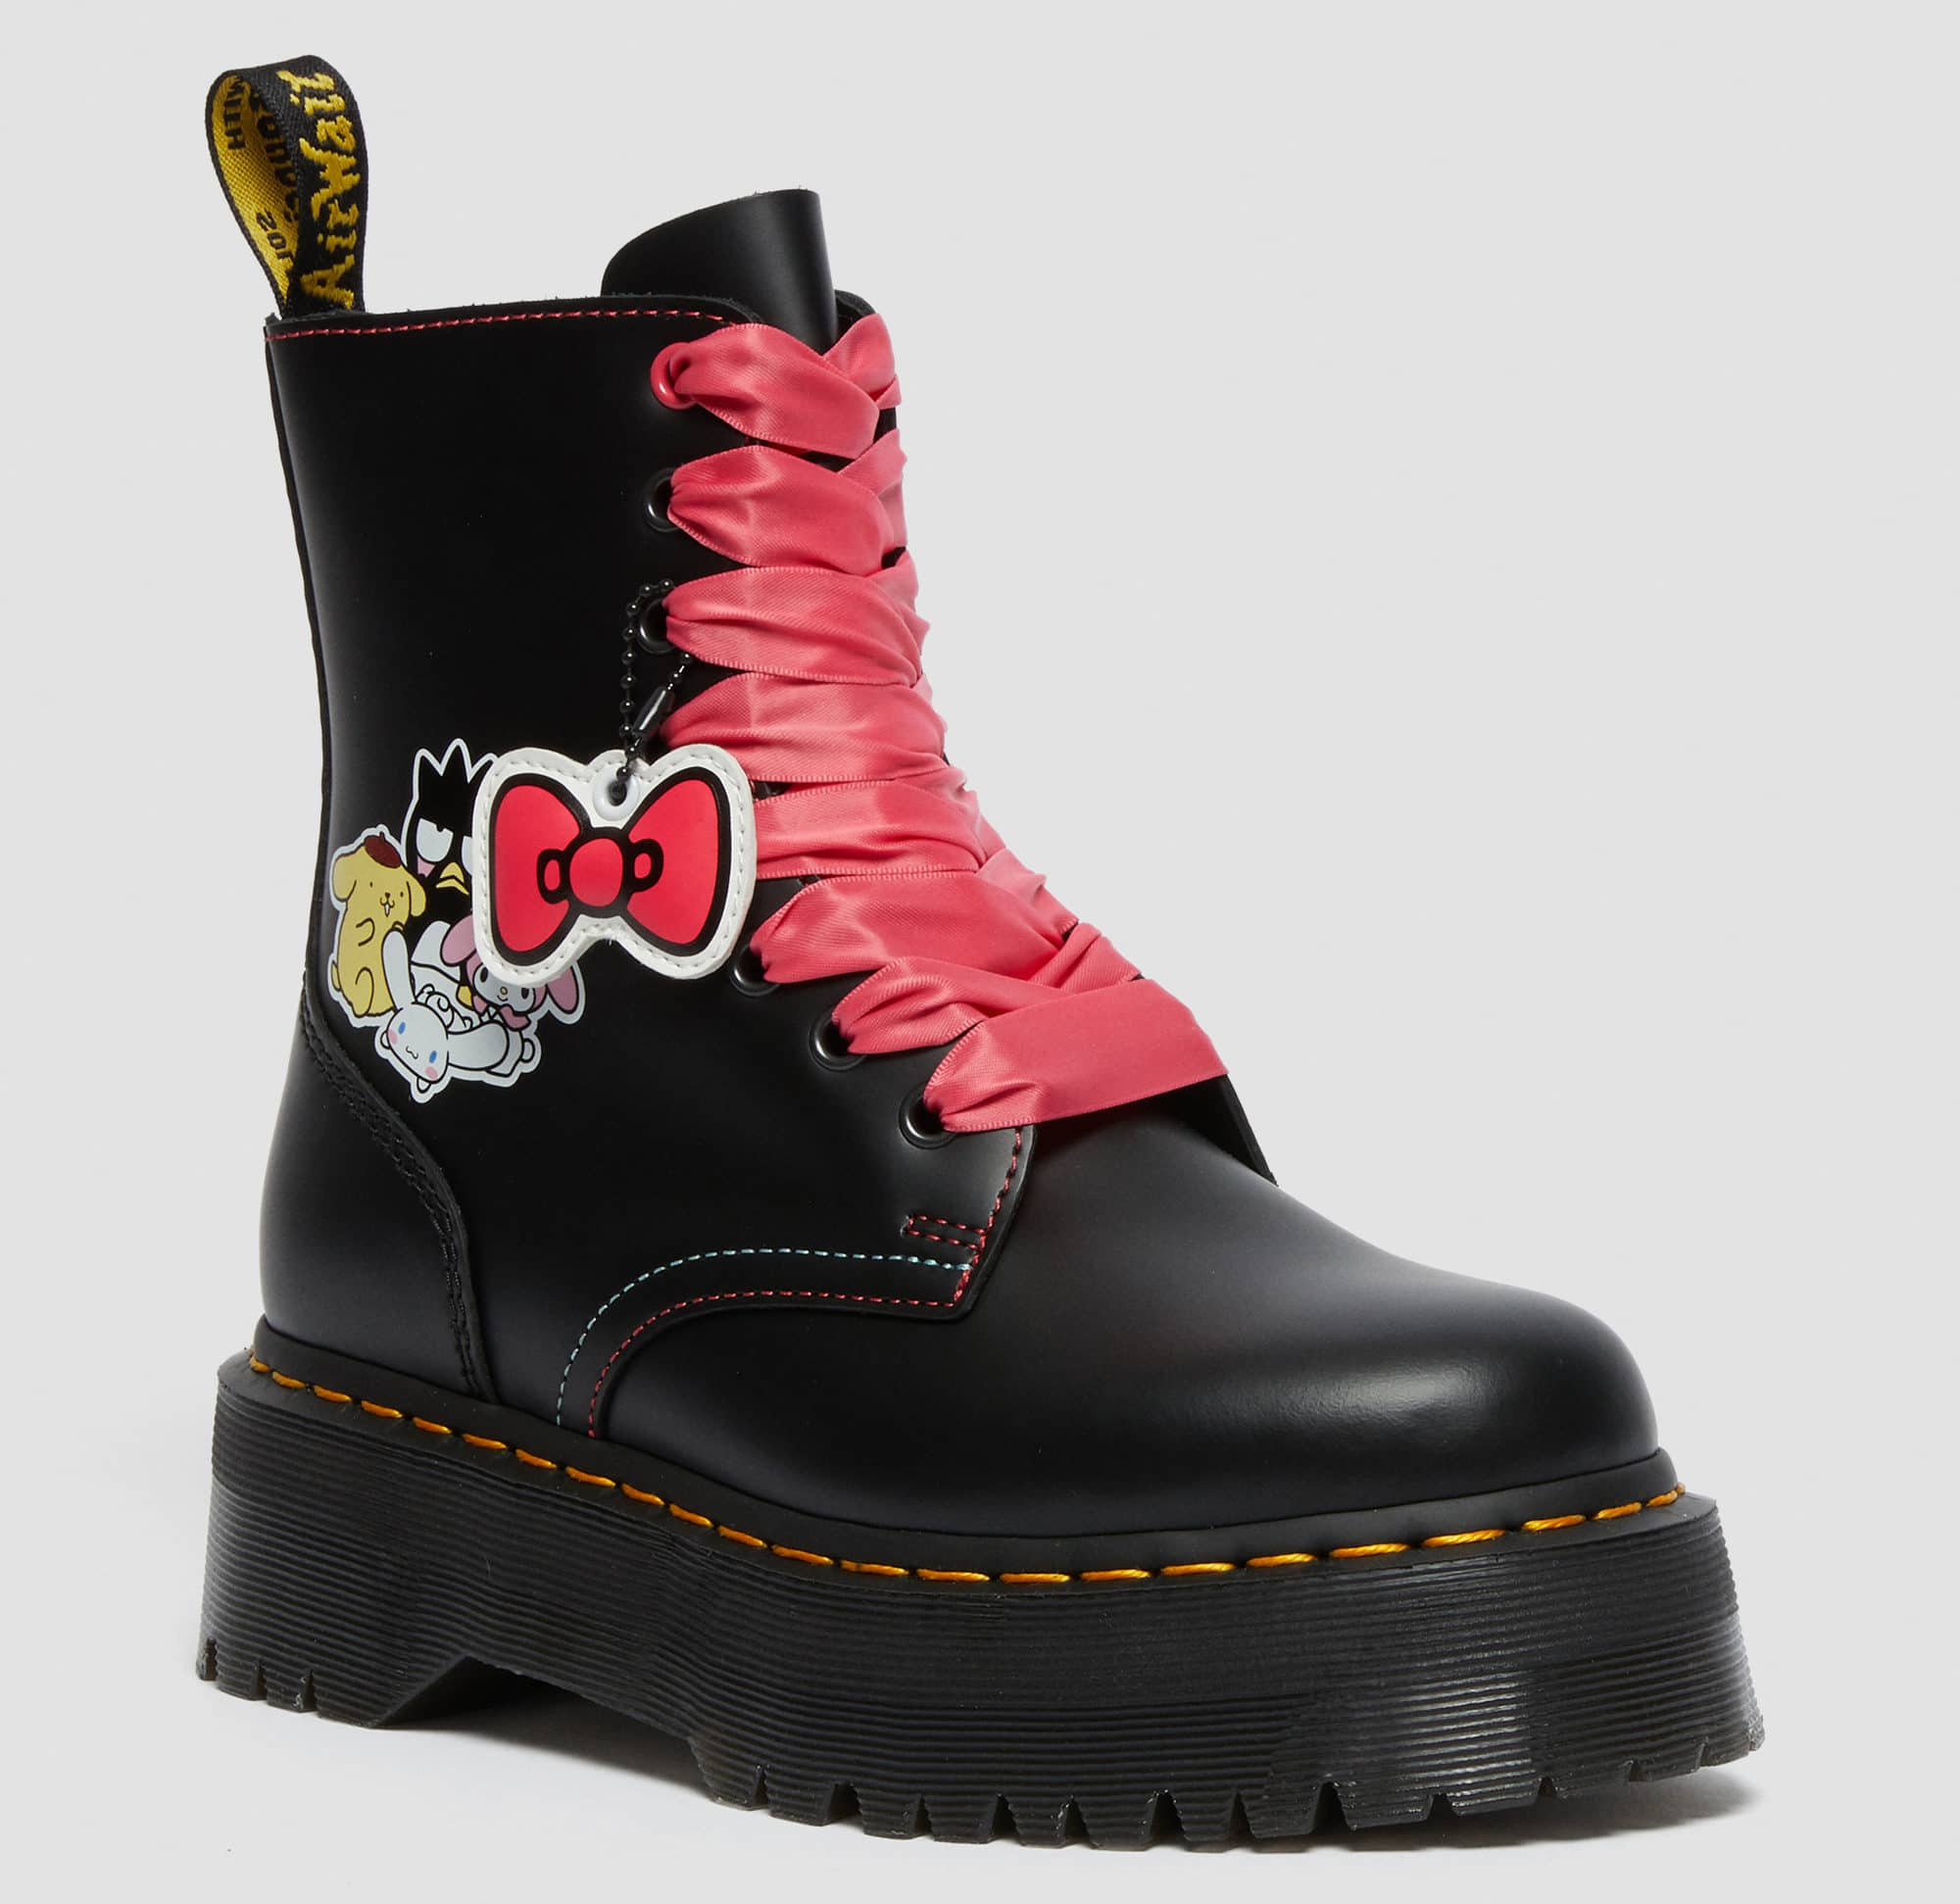 Dr. Martens boots get a cute makeover from Hello Kitty and Friends 11